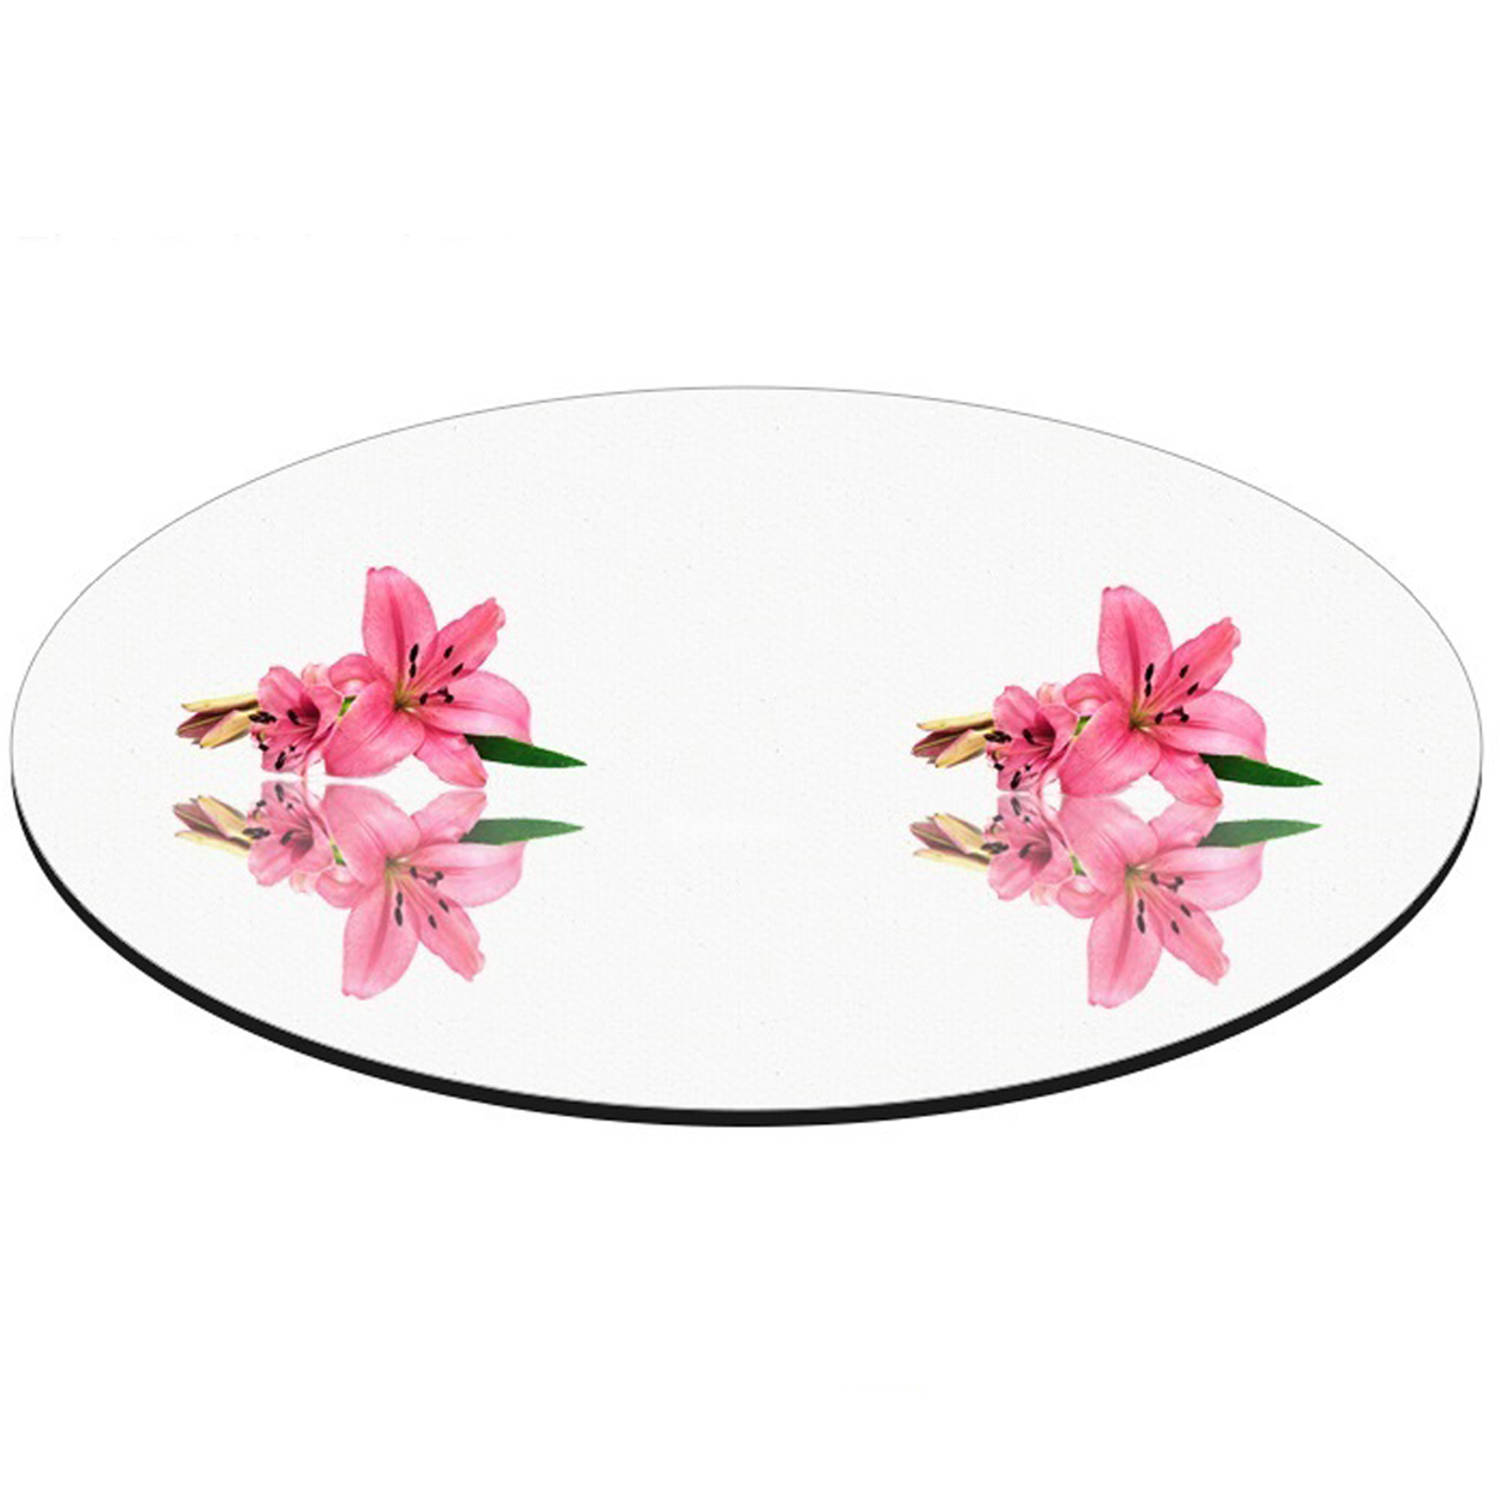 "12"" Round Mirror Centerpiece Plate by Fab Glass and Mirror"